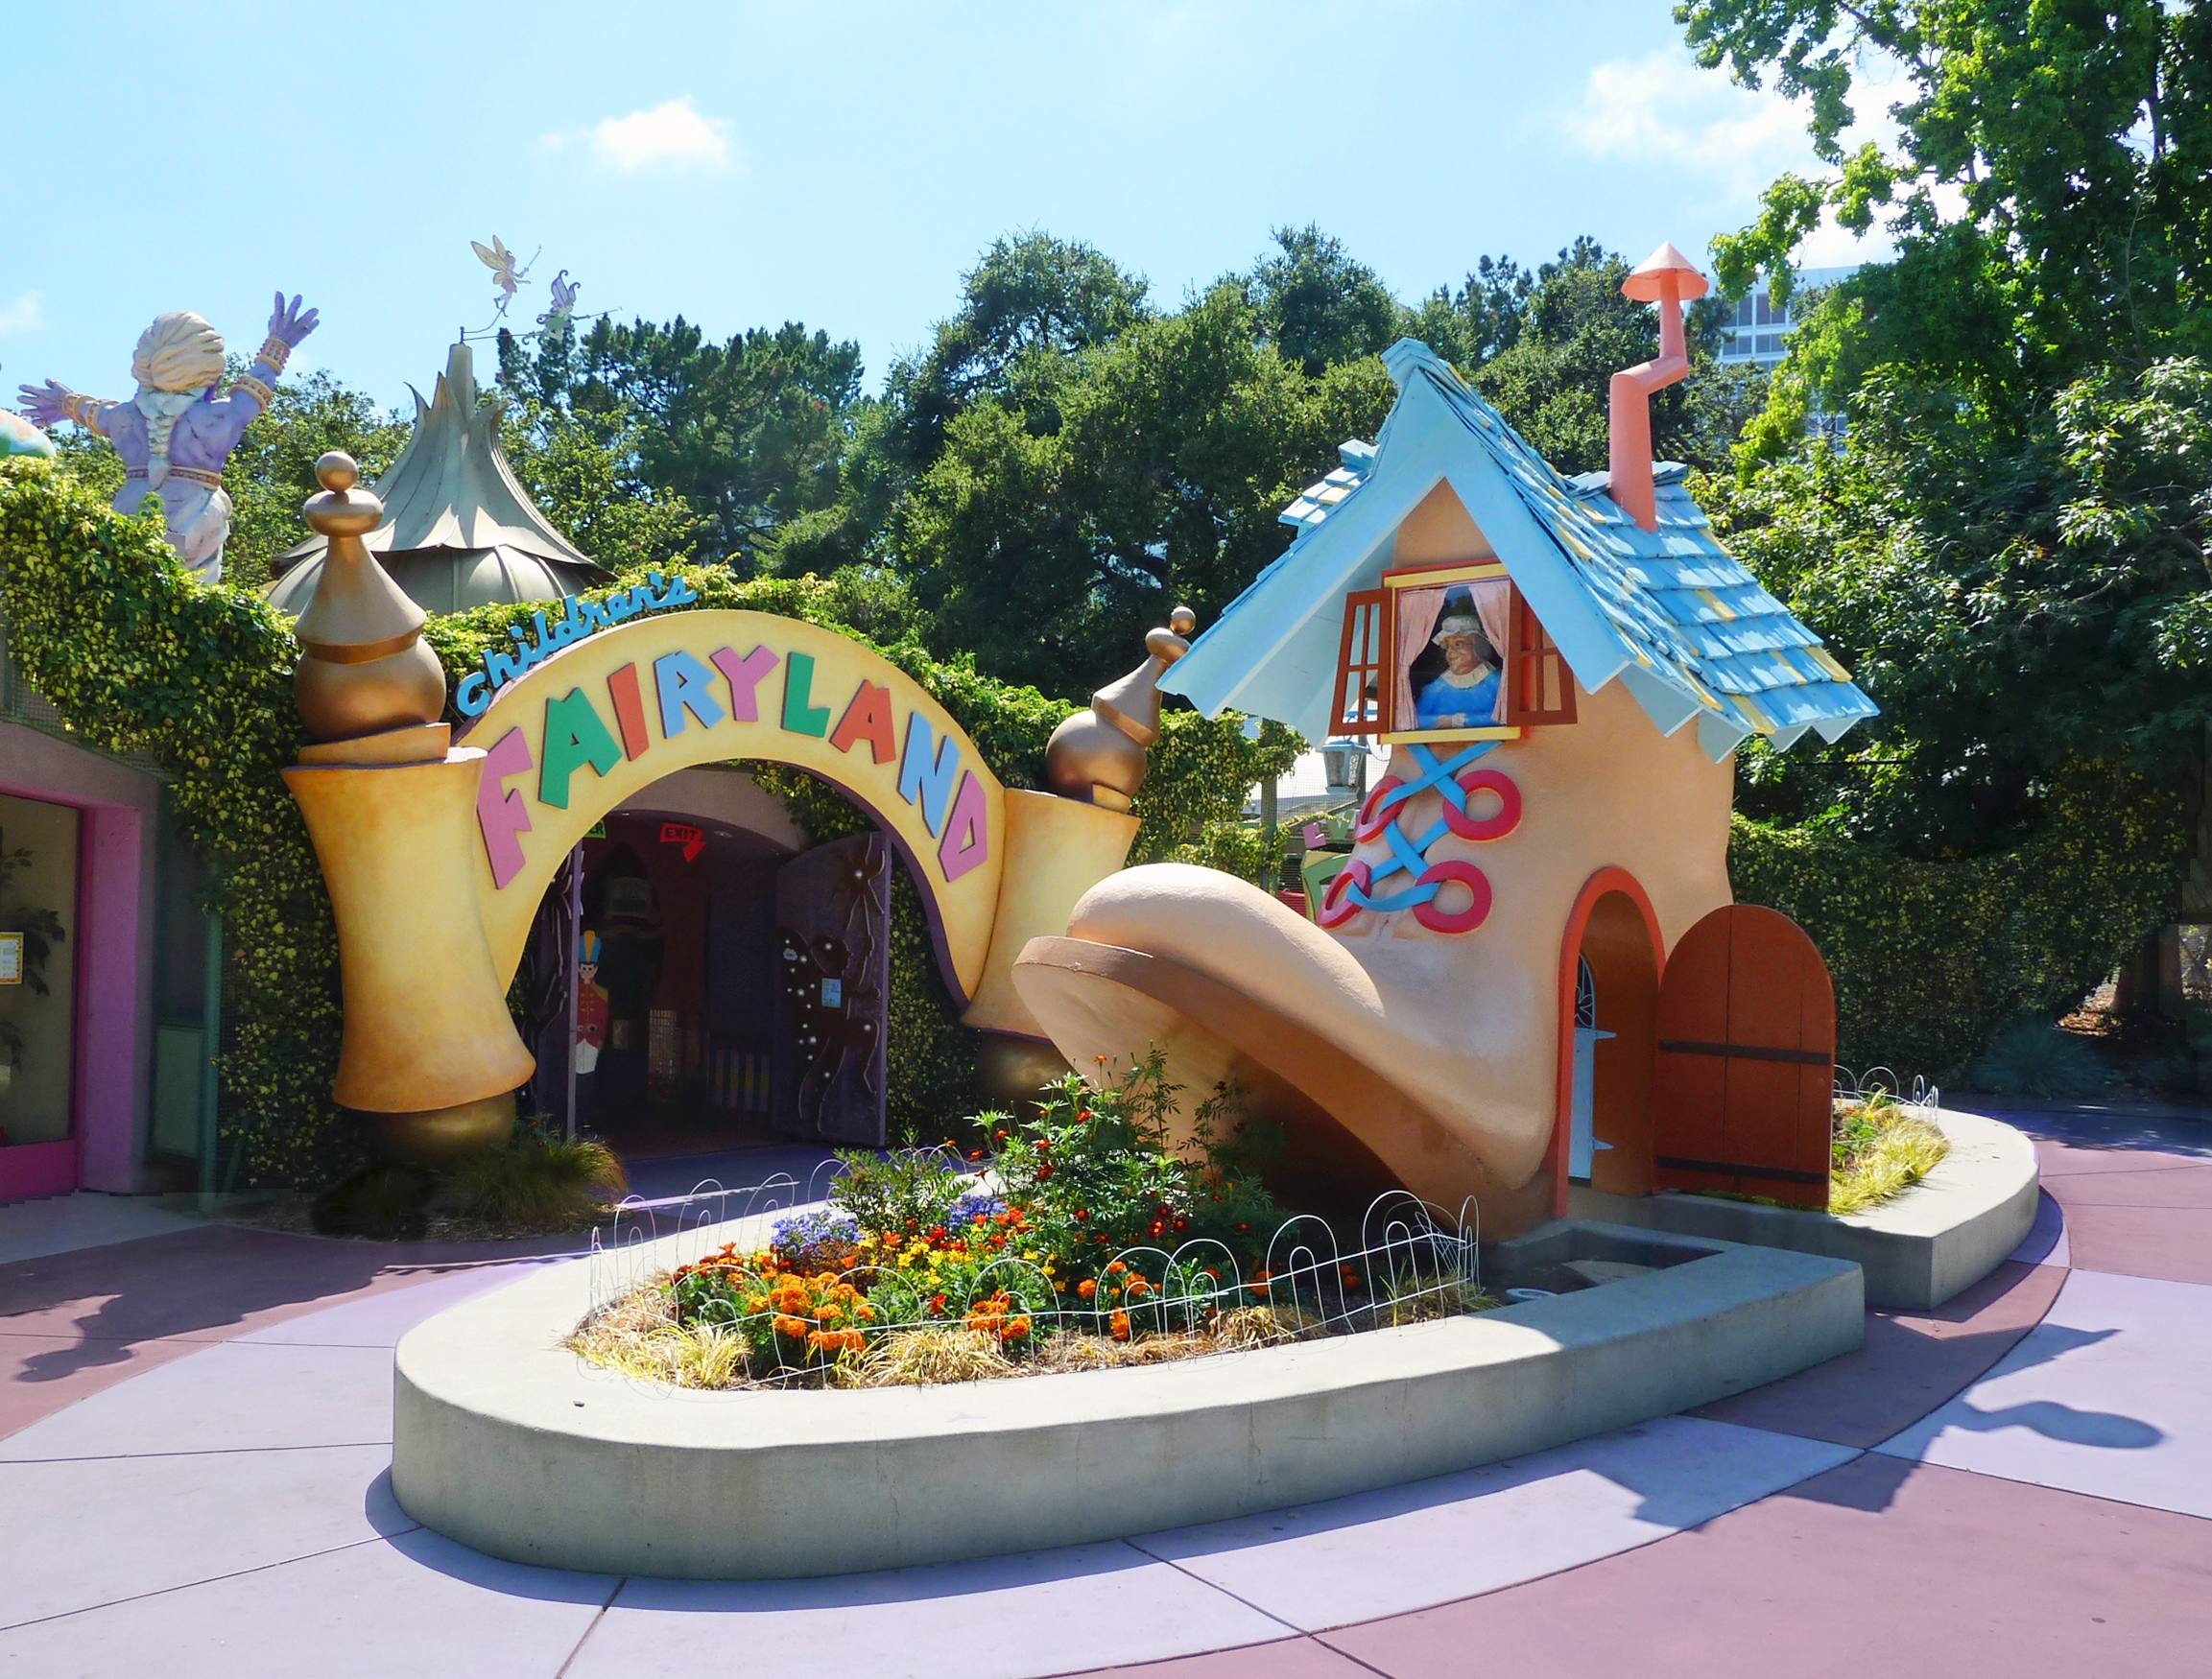 OaklandCA-ChildrensFairyLand.jpg